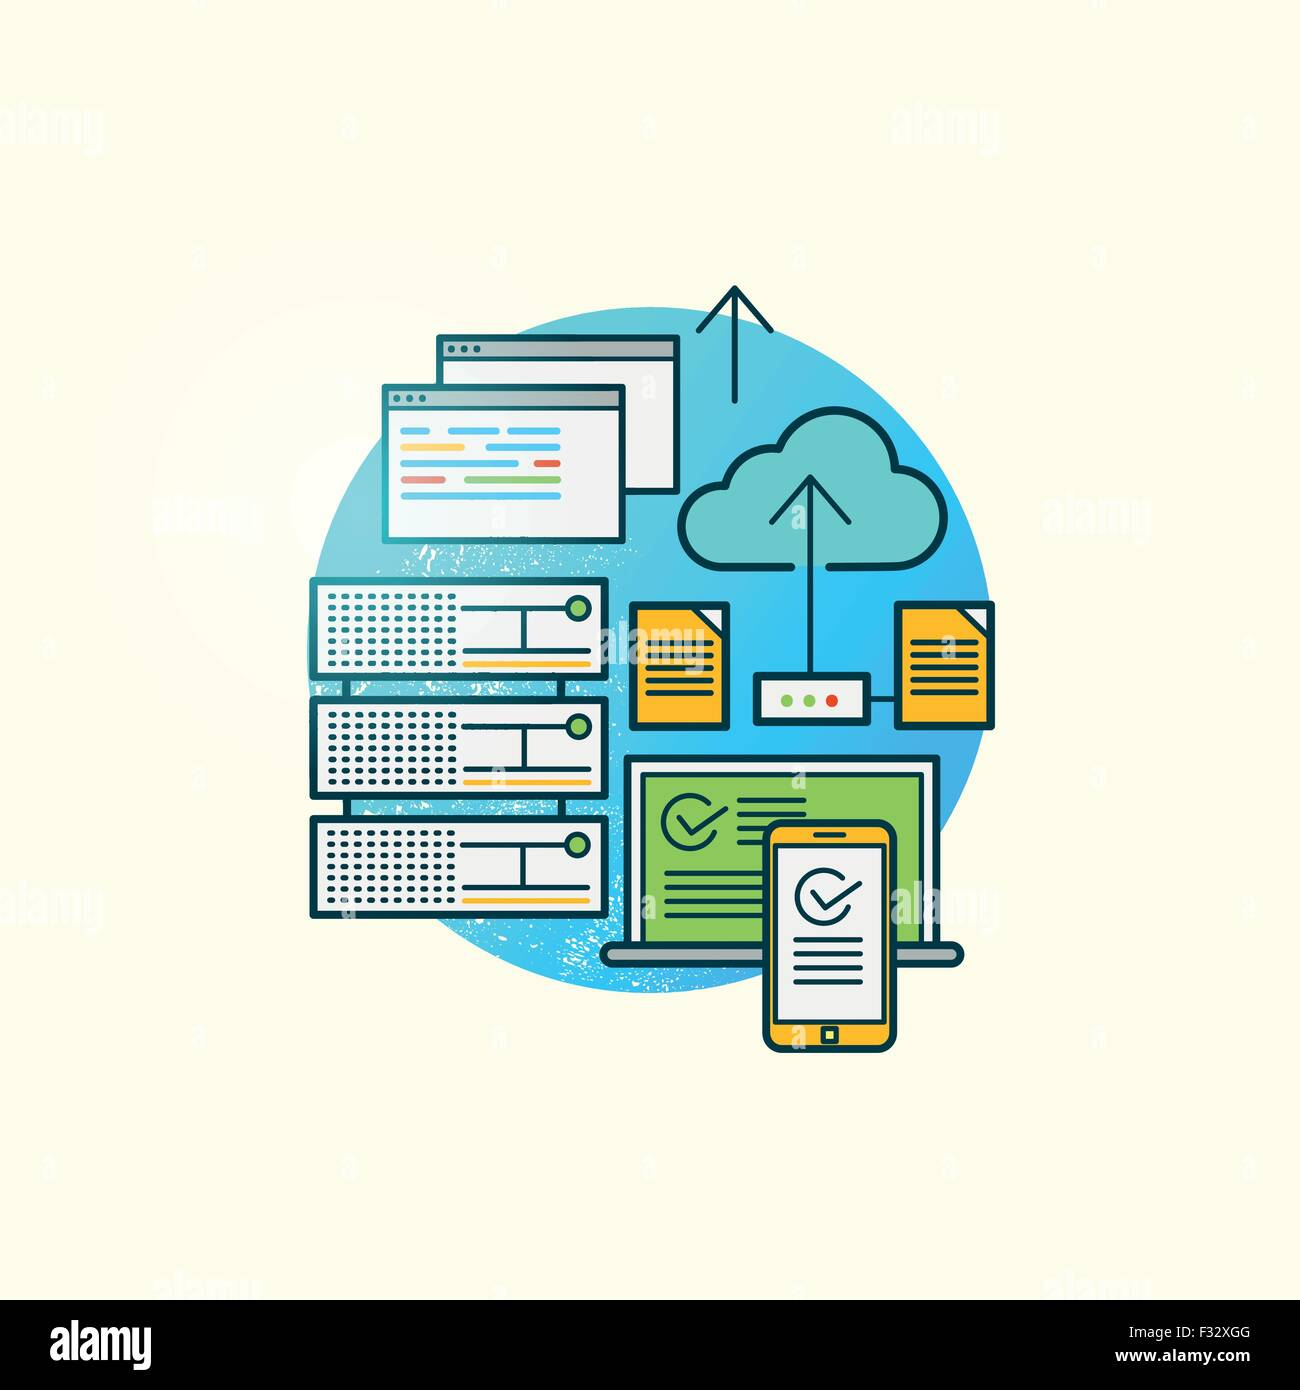 Big Data Vector. Storage and backing up of data driven applications on various platforms. Vector illustration. - Stock Image